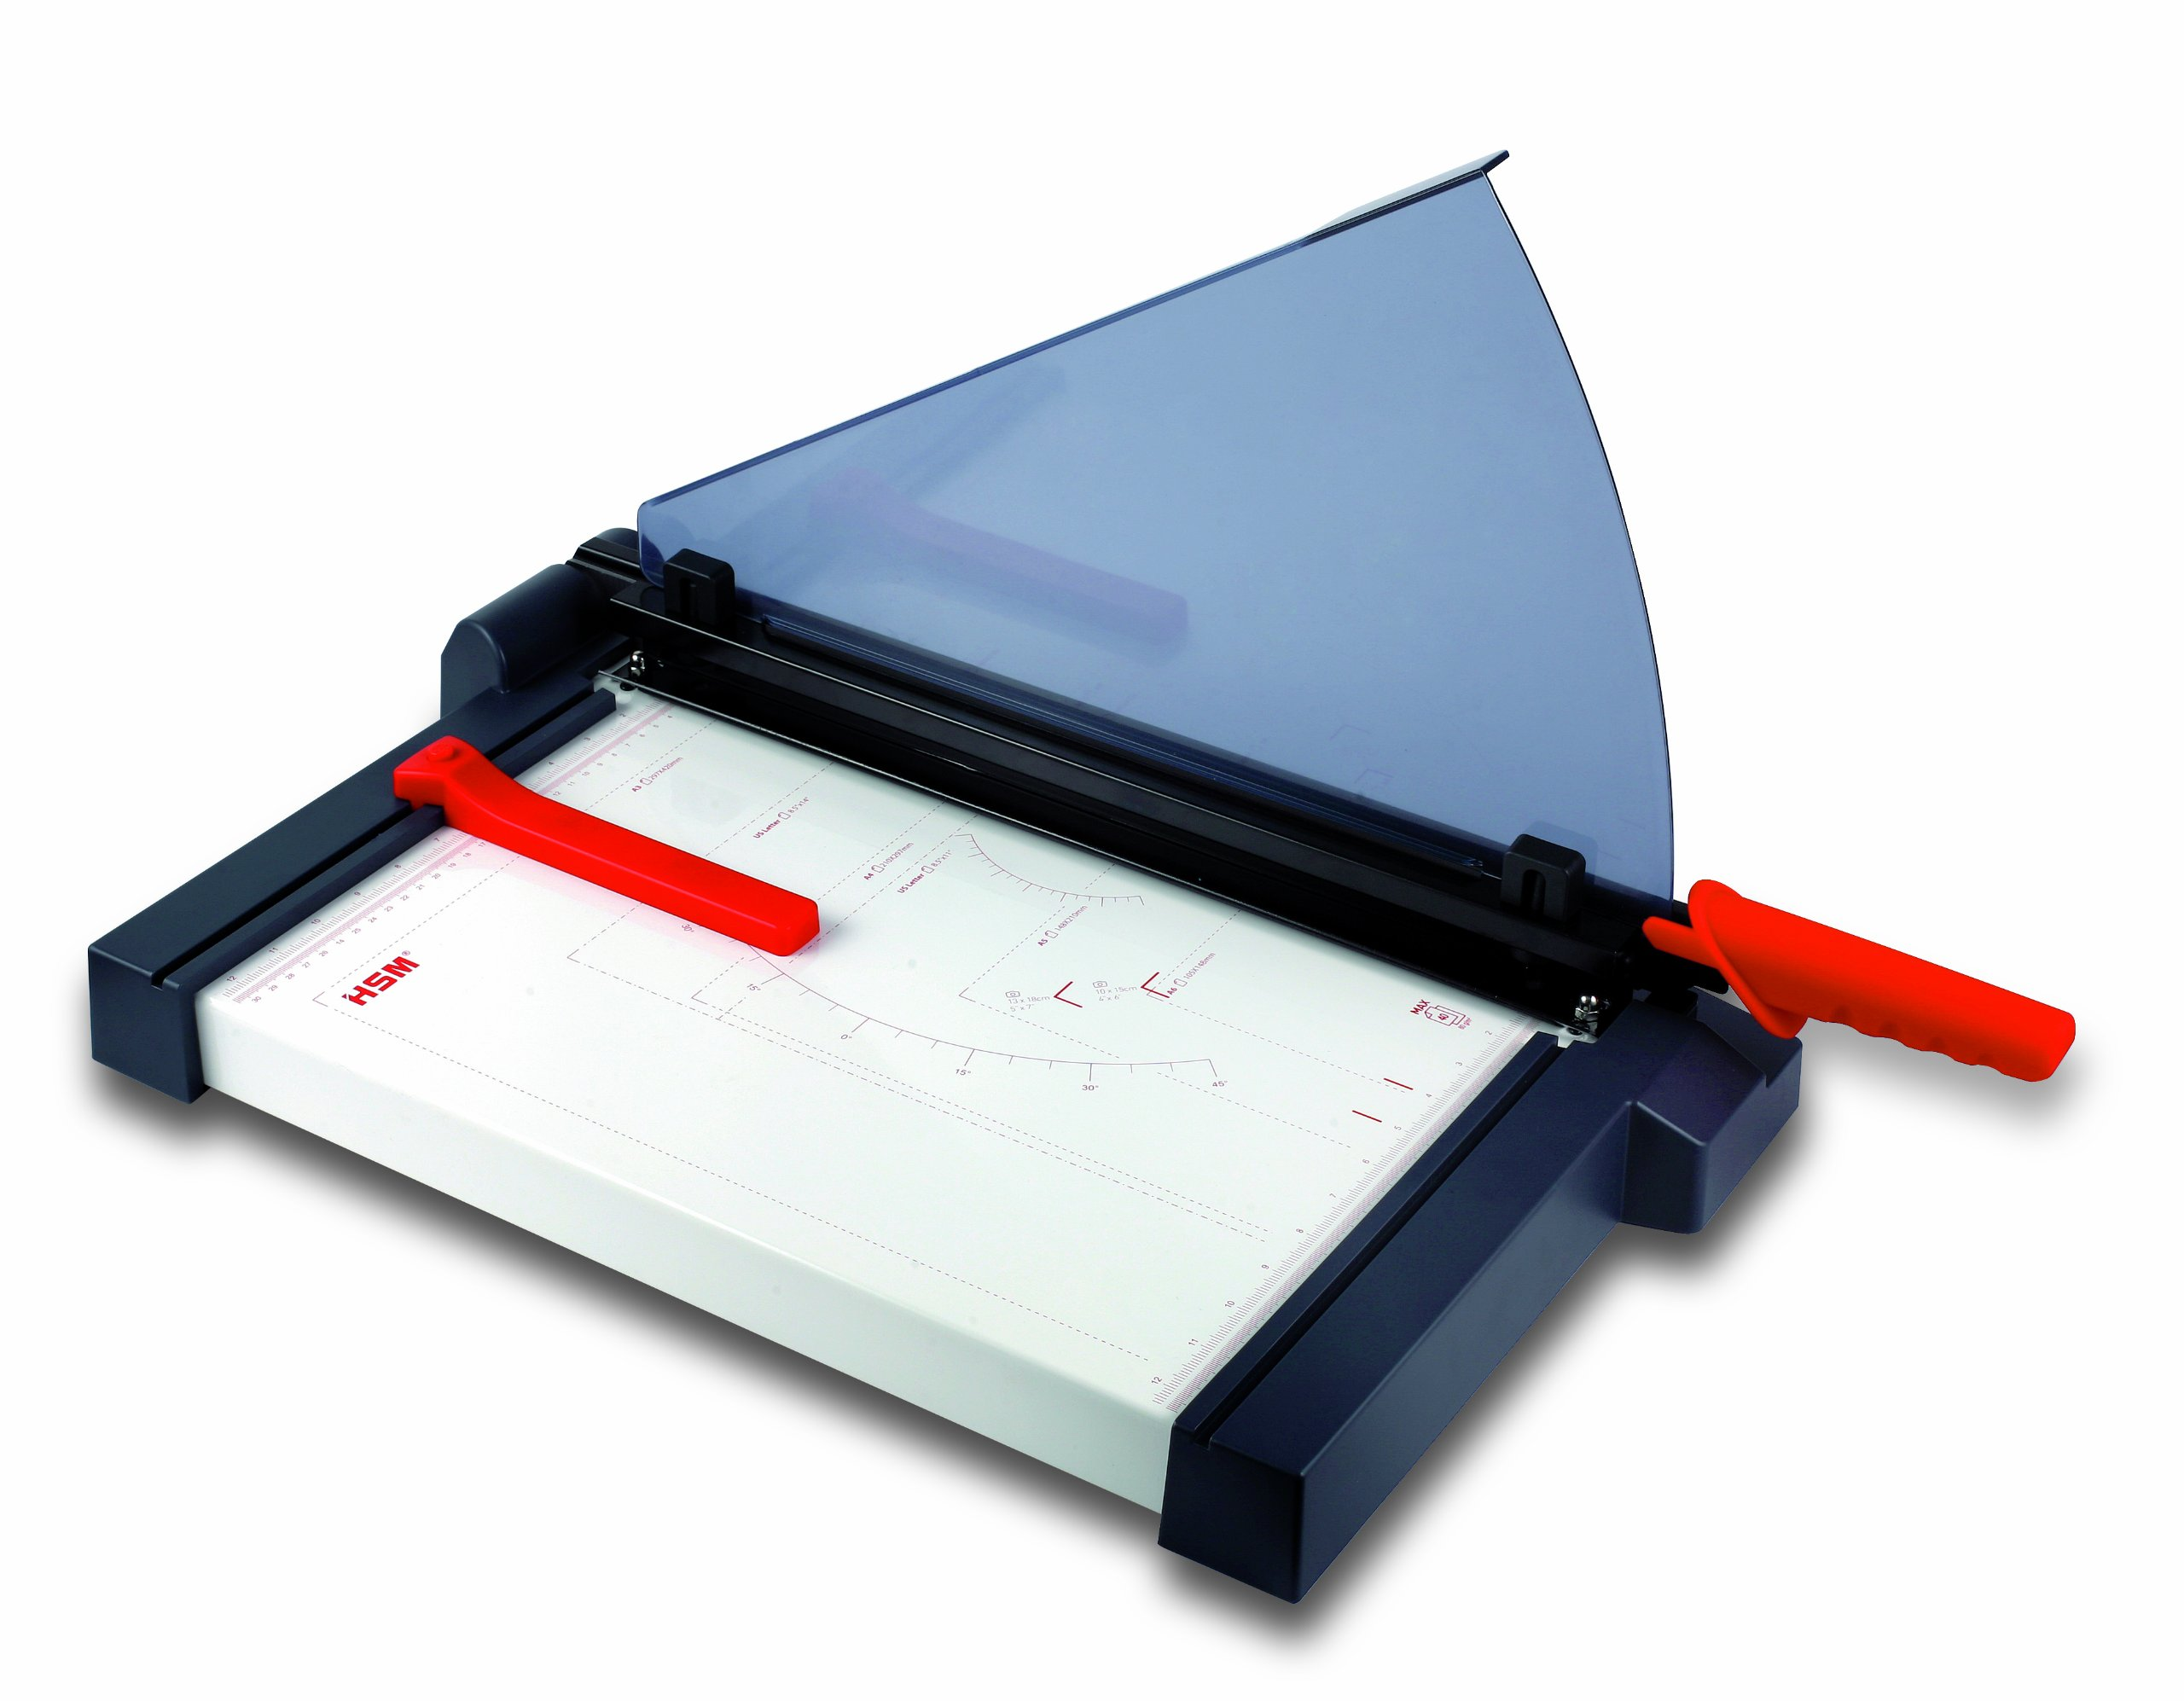 HSM Cutline G-Series G4640 Guillotine Paper Cutter,  Cuts Up to 40 Sheets